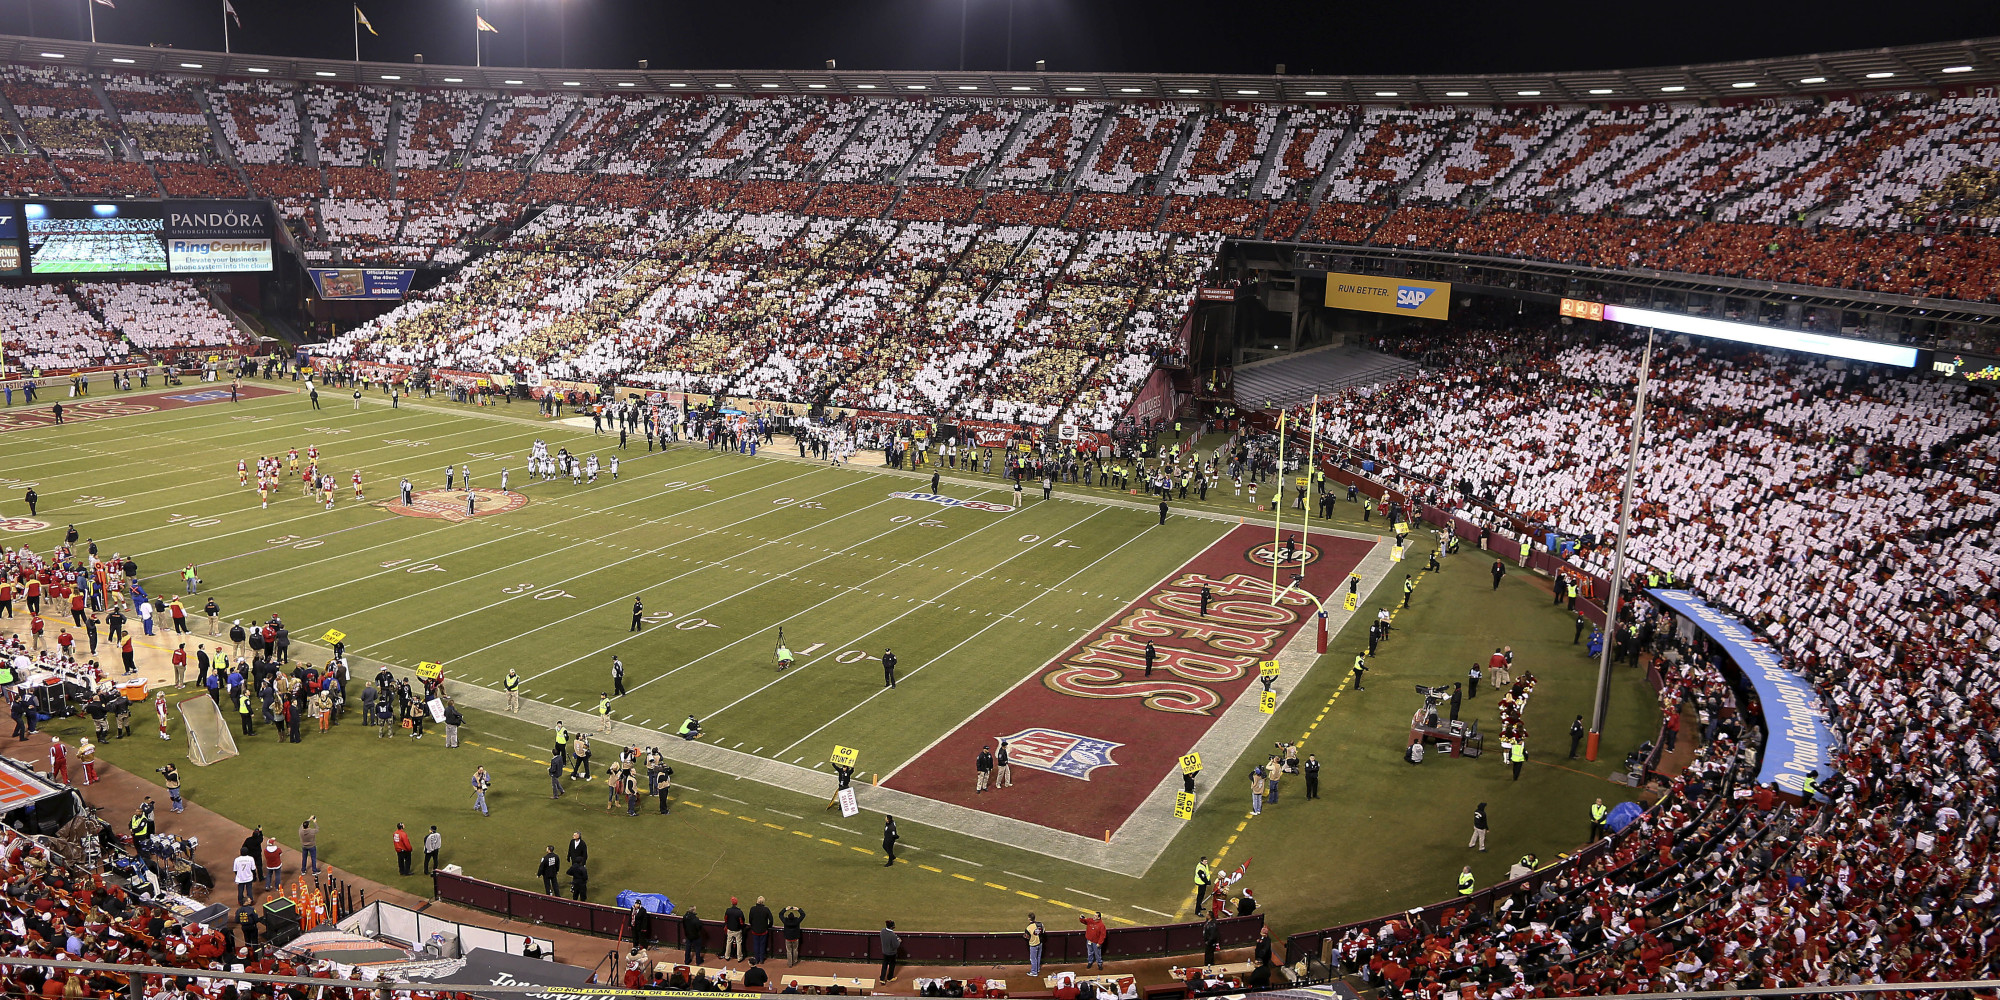 """Closer look at the 49ers football field at Candlestick with """"Farewell Candlestick"""" in the background."""